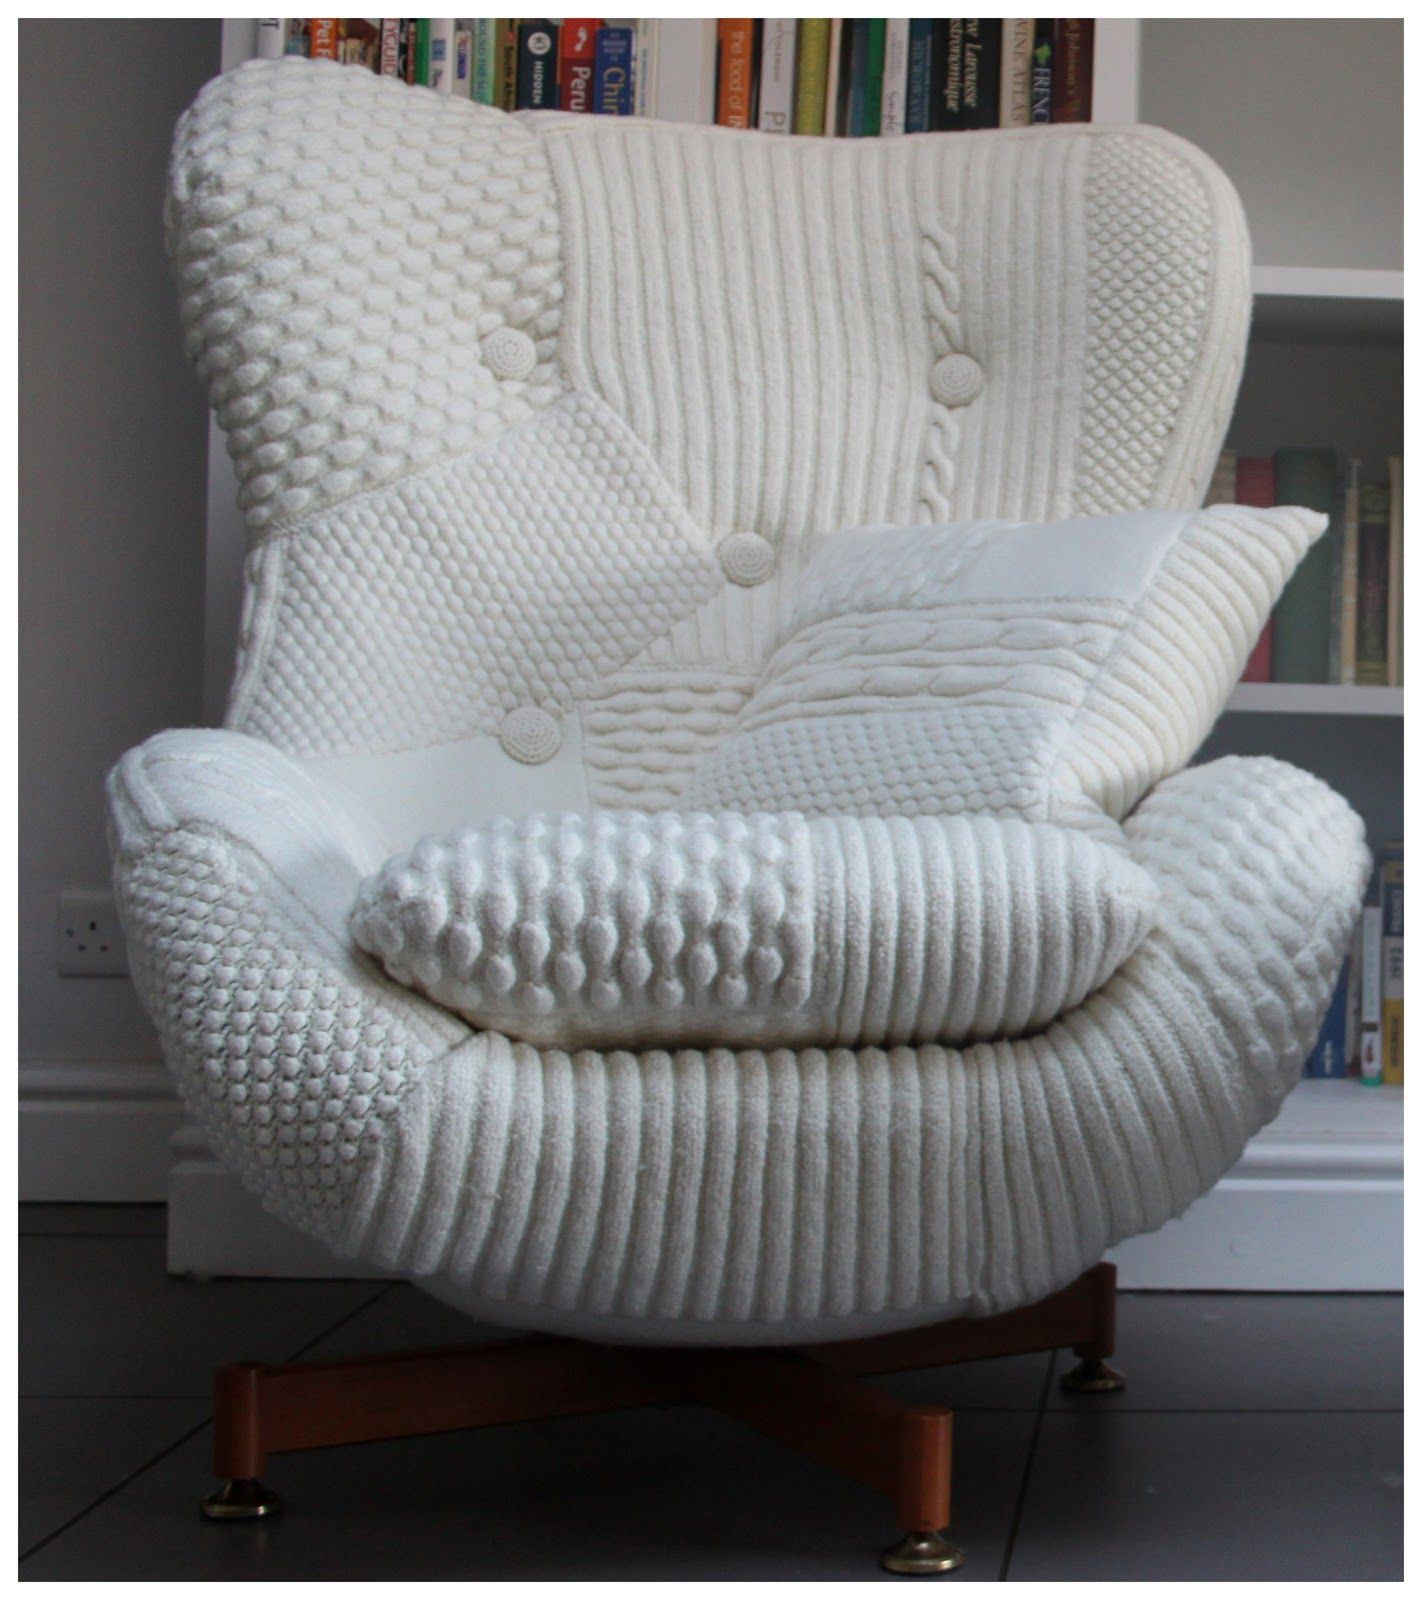 Fundas Para Sofa En Peru Leather Office Furniture This Chair Is Saying Come Cuddle With Me Decoracion